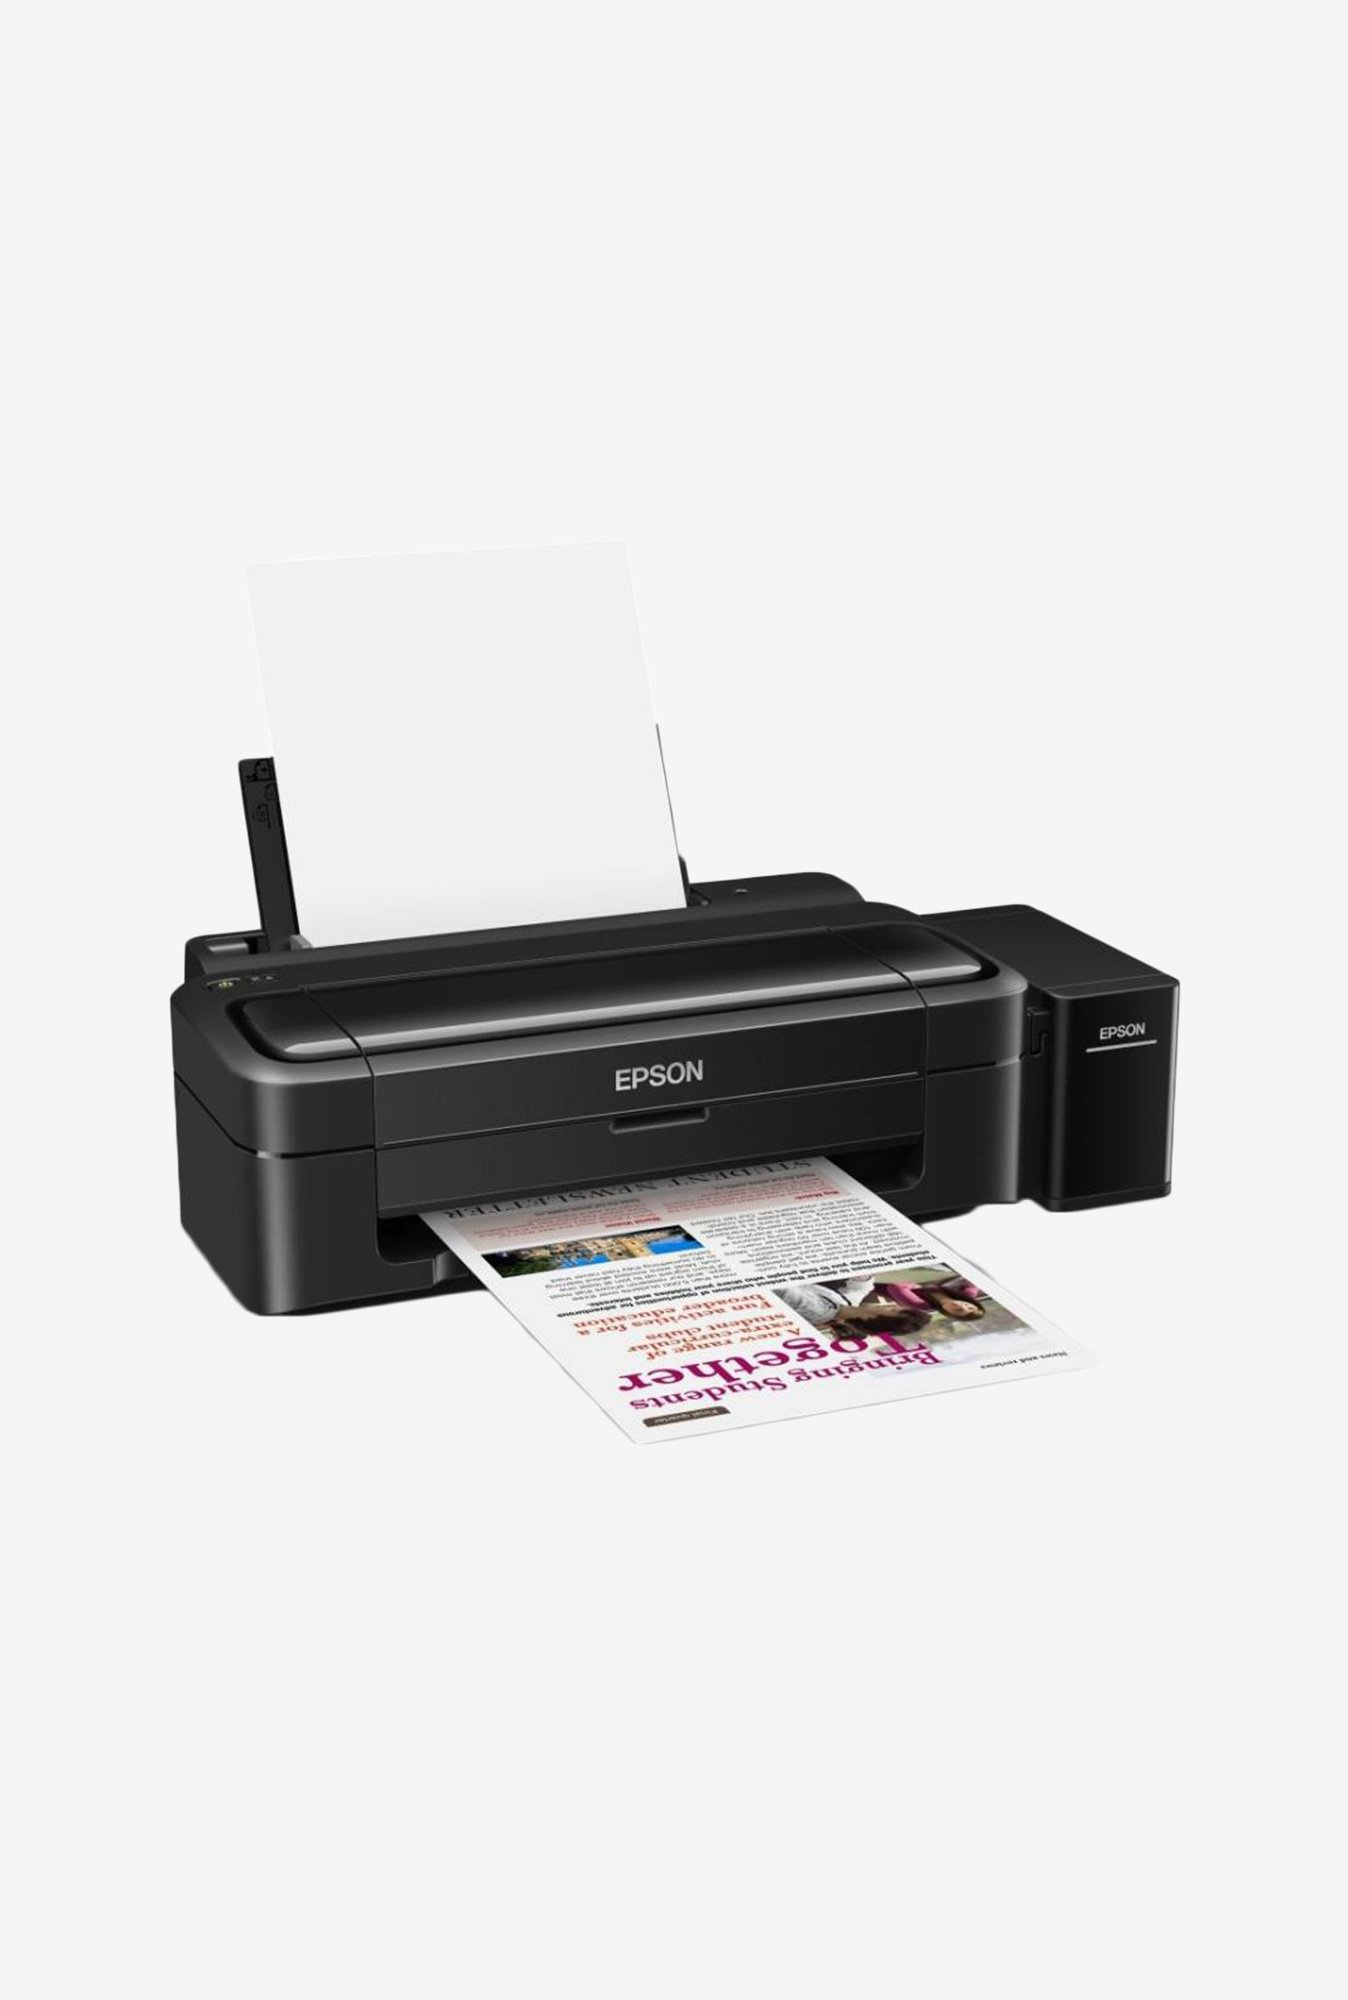 Buy Epson Printer Parts Upto 30 Off Online Tata Cliq Main Board L805 Wifi L130 Colour Print Function Inkjet Black